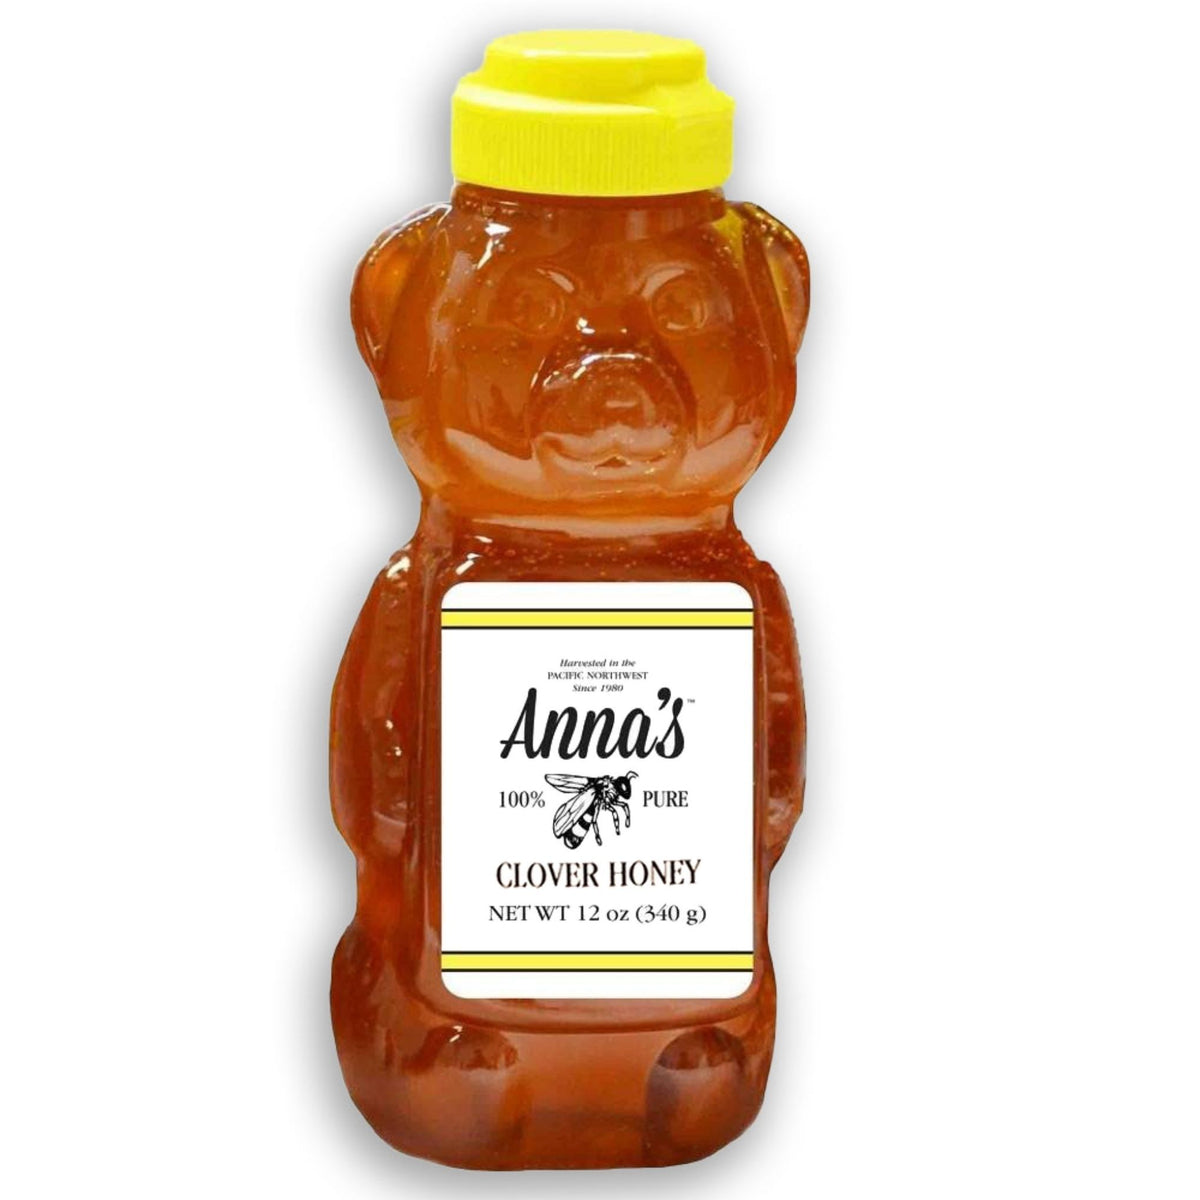 Anna's 100% Pure Clover Honey Harvested in The Pacific Northwest and Put Inside a 12-Ounce Bear Bottle